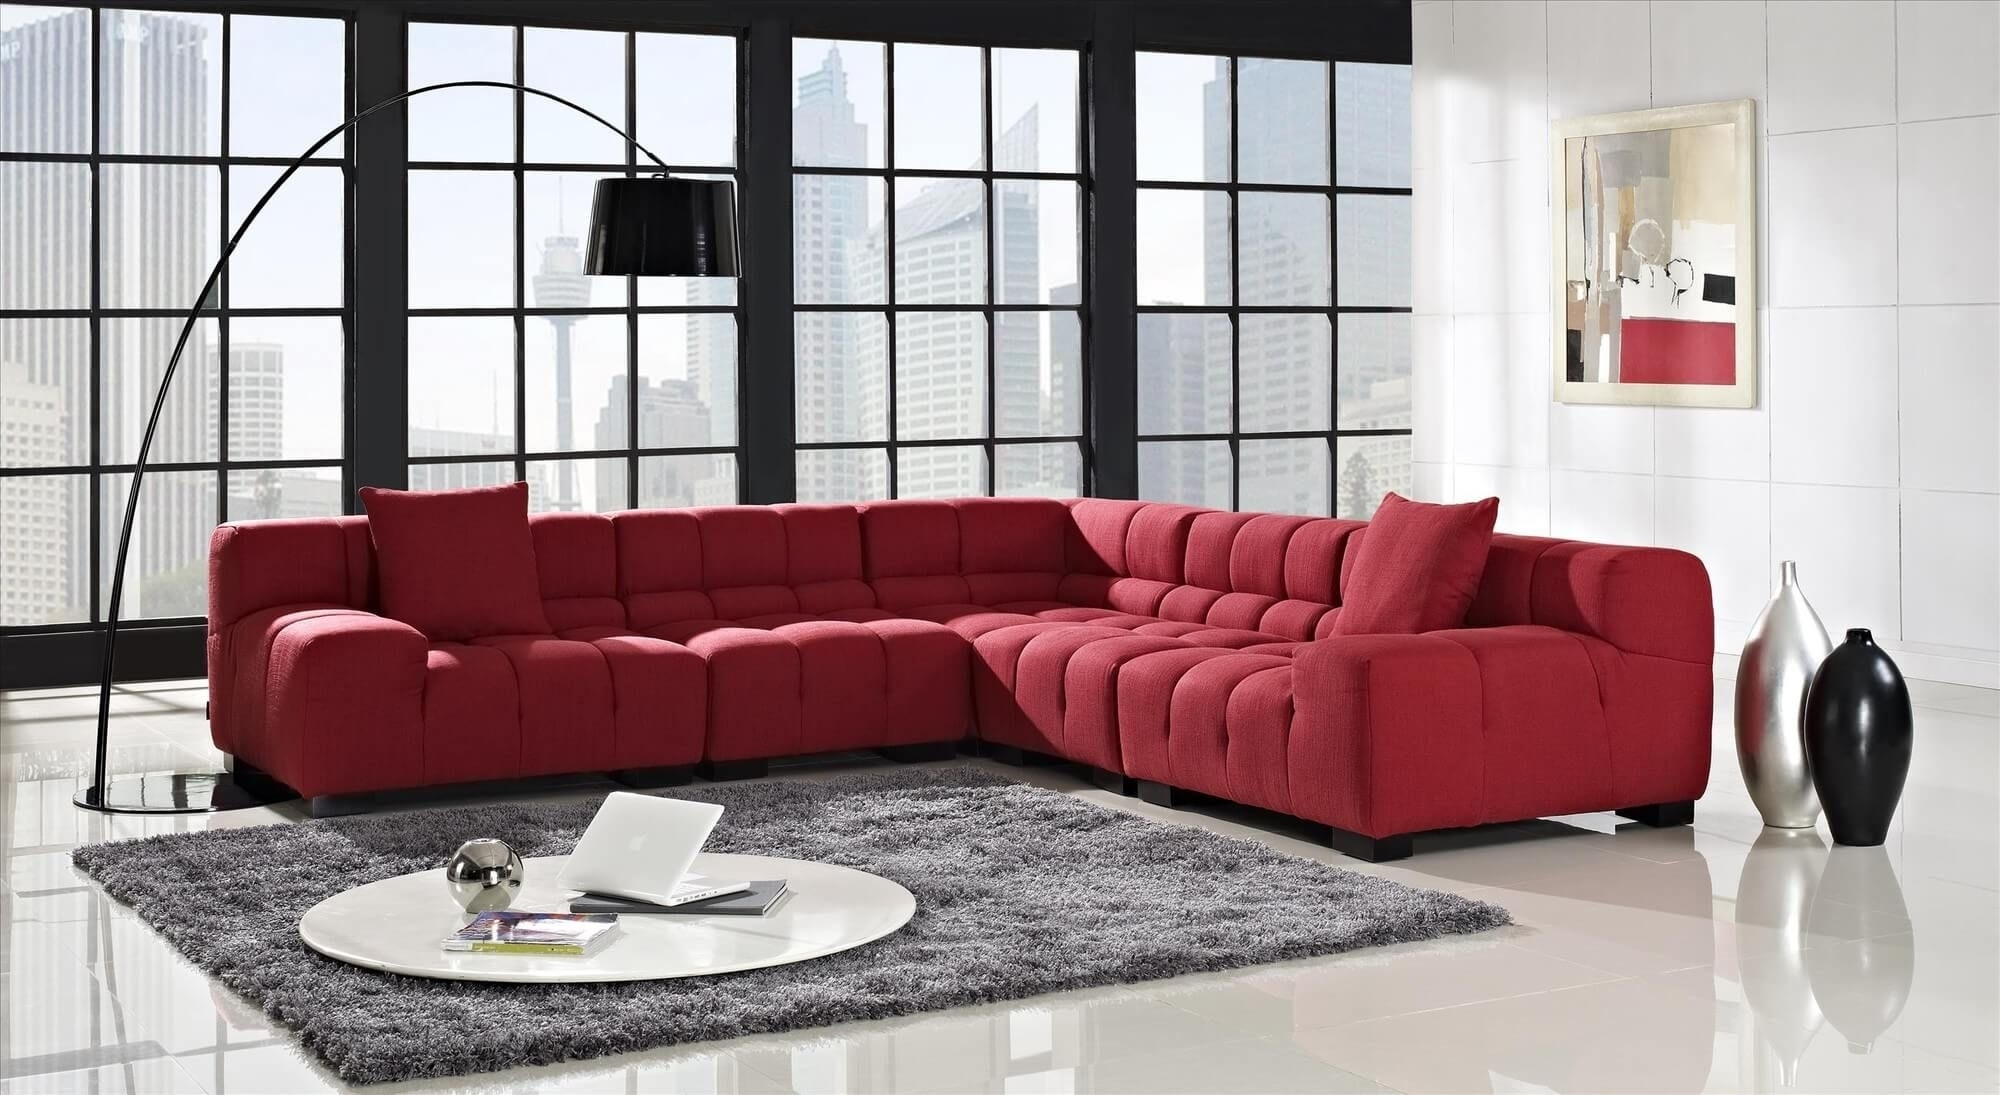 18 Stylish Modern Red Sectional Sofas | Solid Wood, Upholstery And Woods Regarding Red Sectional Sofas (View 3 of 10)